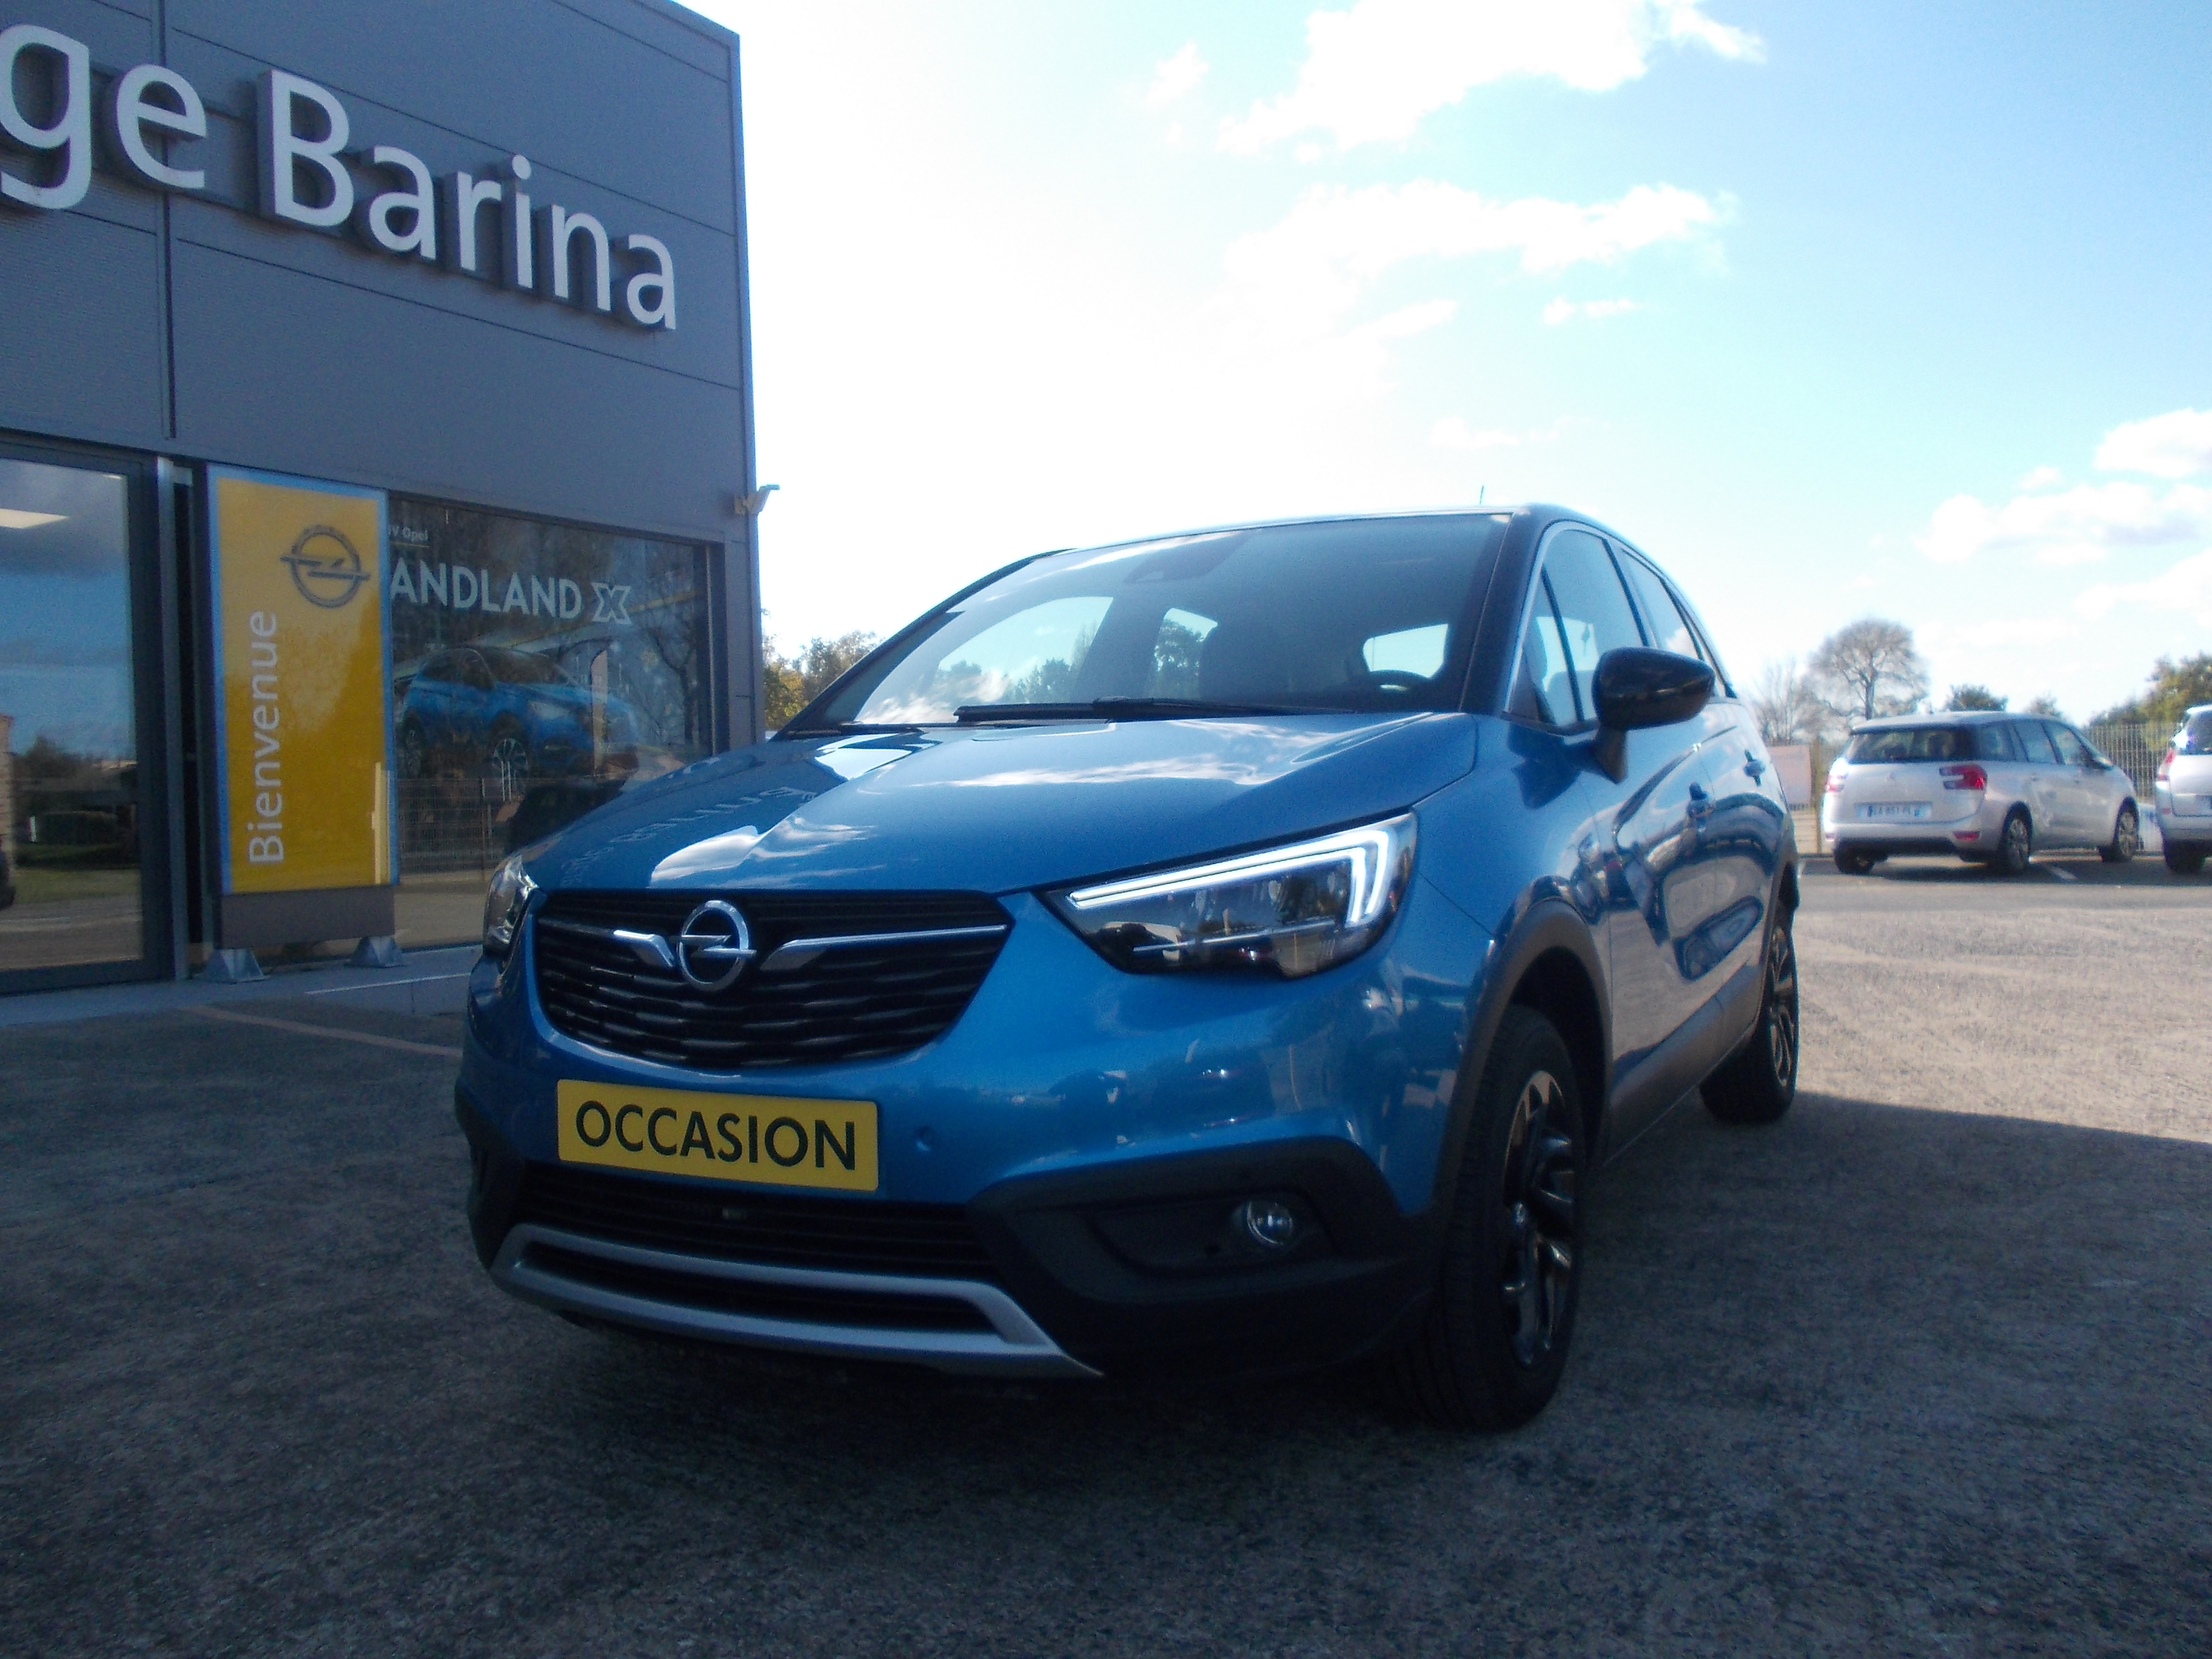 OPEL CROSSLAND X - 1.2 Turbo 130 ch BVA6 Design 120 ans